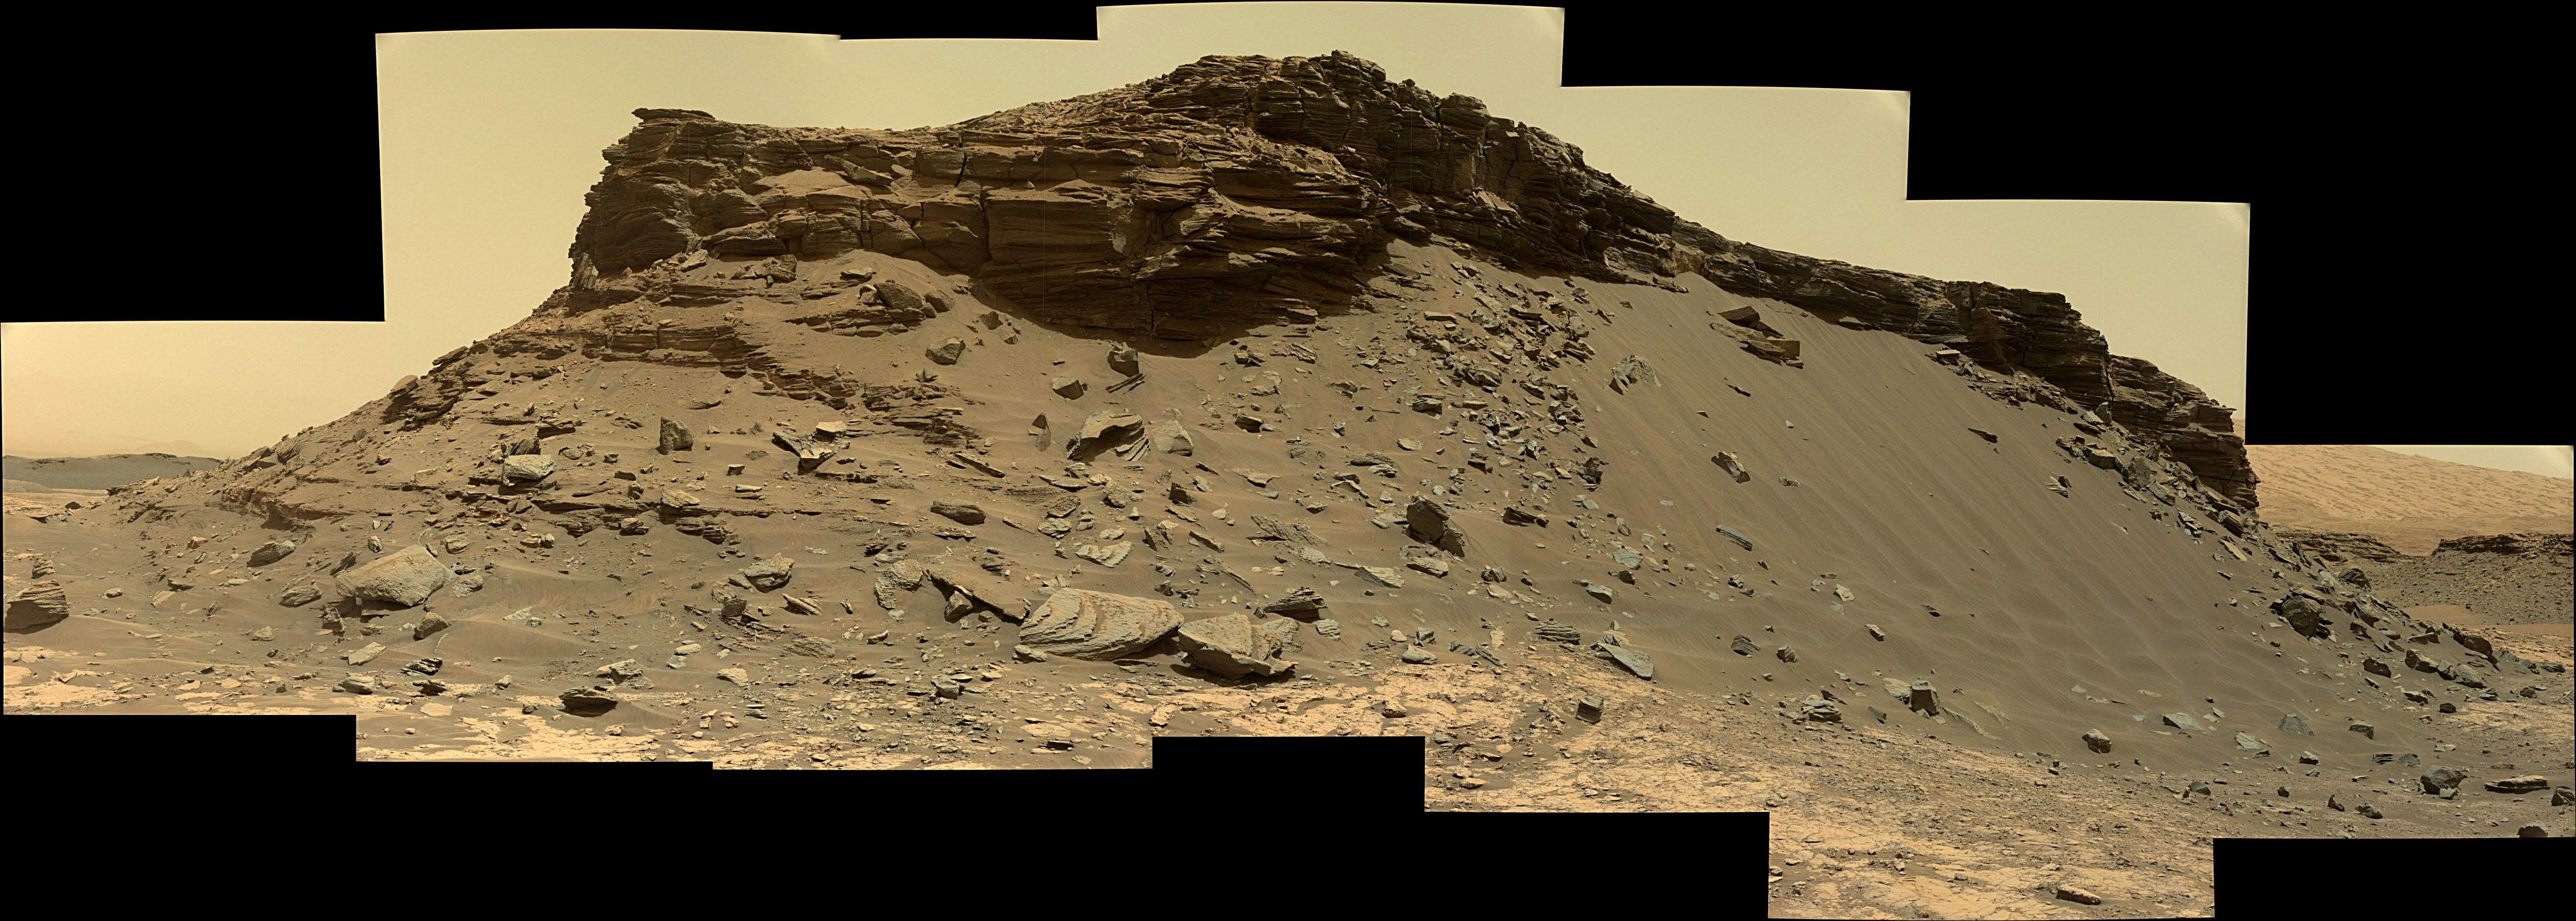 panoramic curiosity rover view 1e - sol 1432 - was life on mars